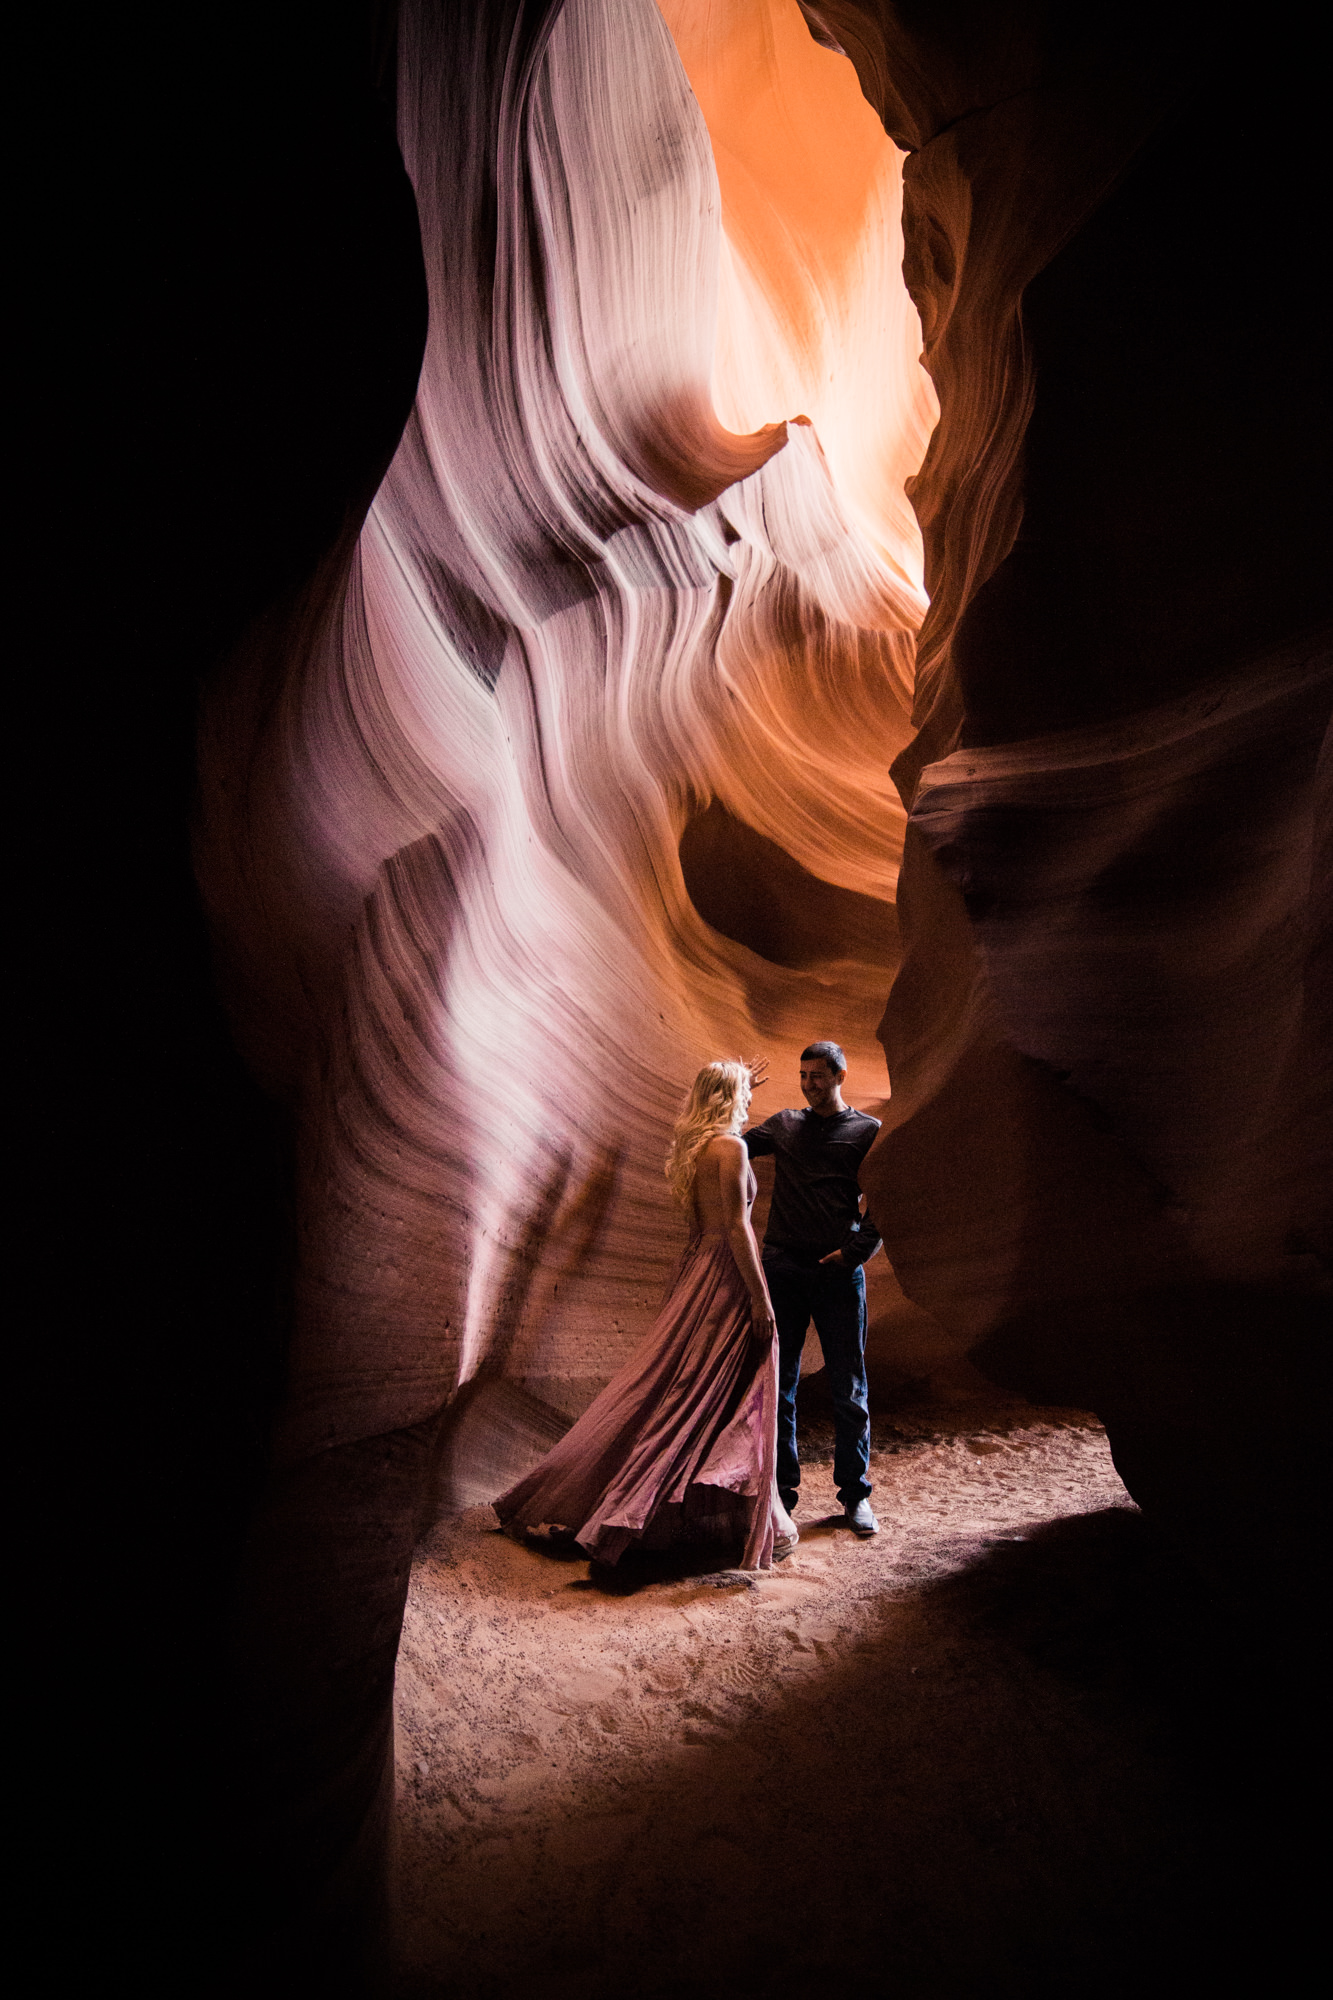 chelsea + jorge's day-after wedding adventure session in page, arizona | antelope canyon | adventure elopement photographer | the hearnes adventure photography | www.thehearnes.com